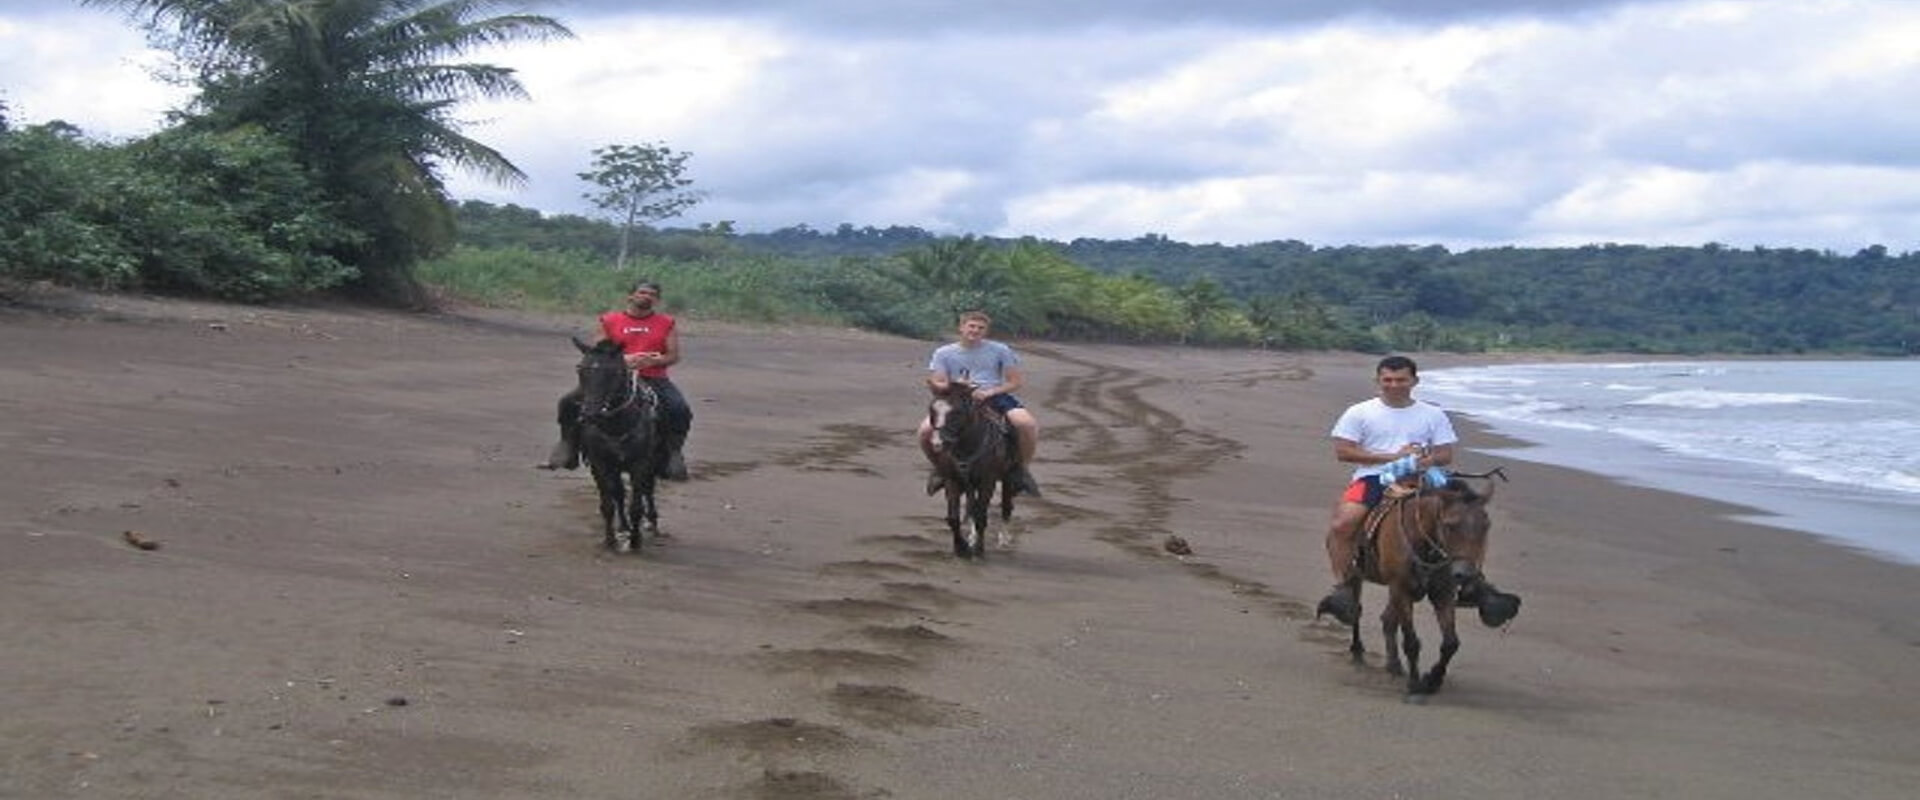 Drake Bay Horseback Riding Tour | Costa Rica Jade Tours